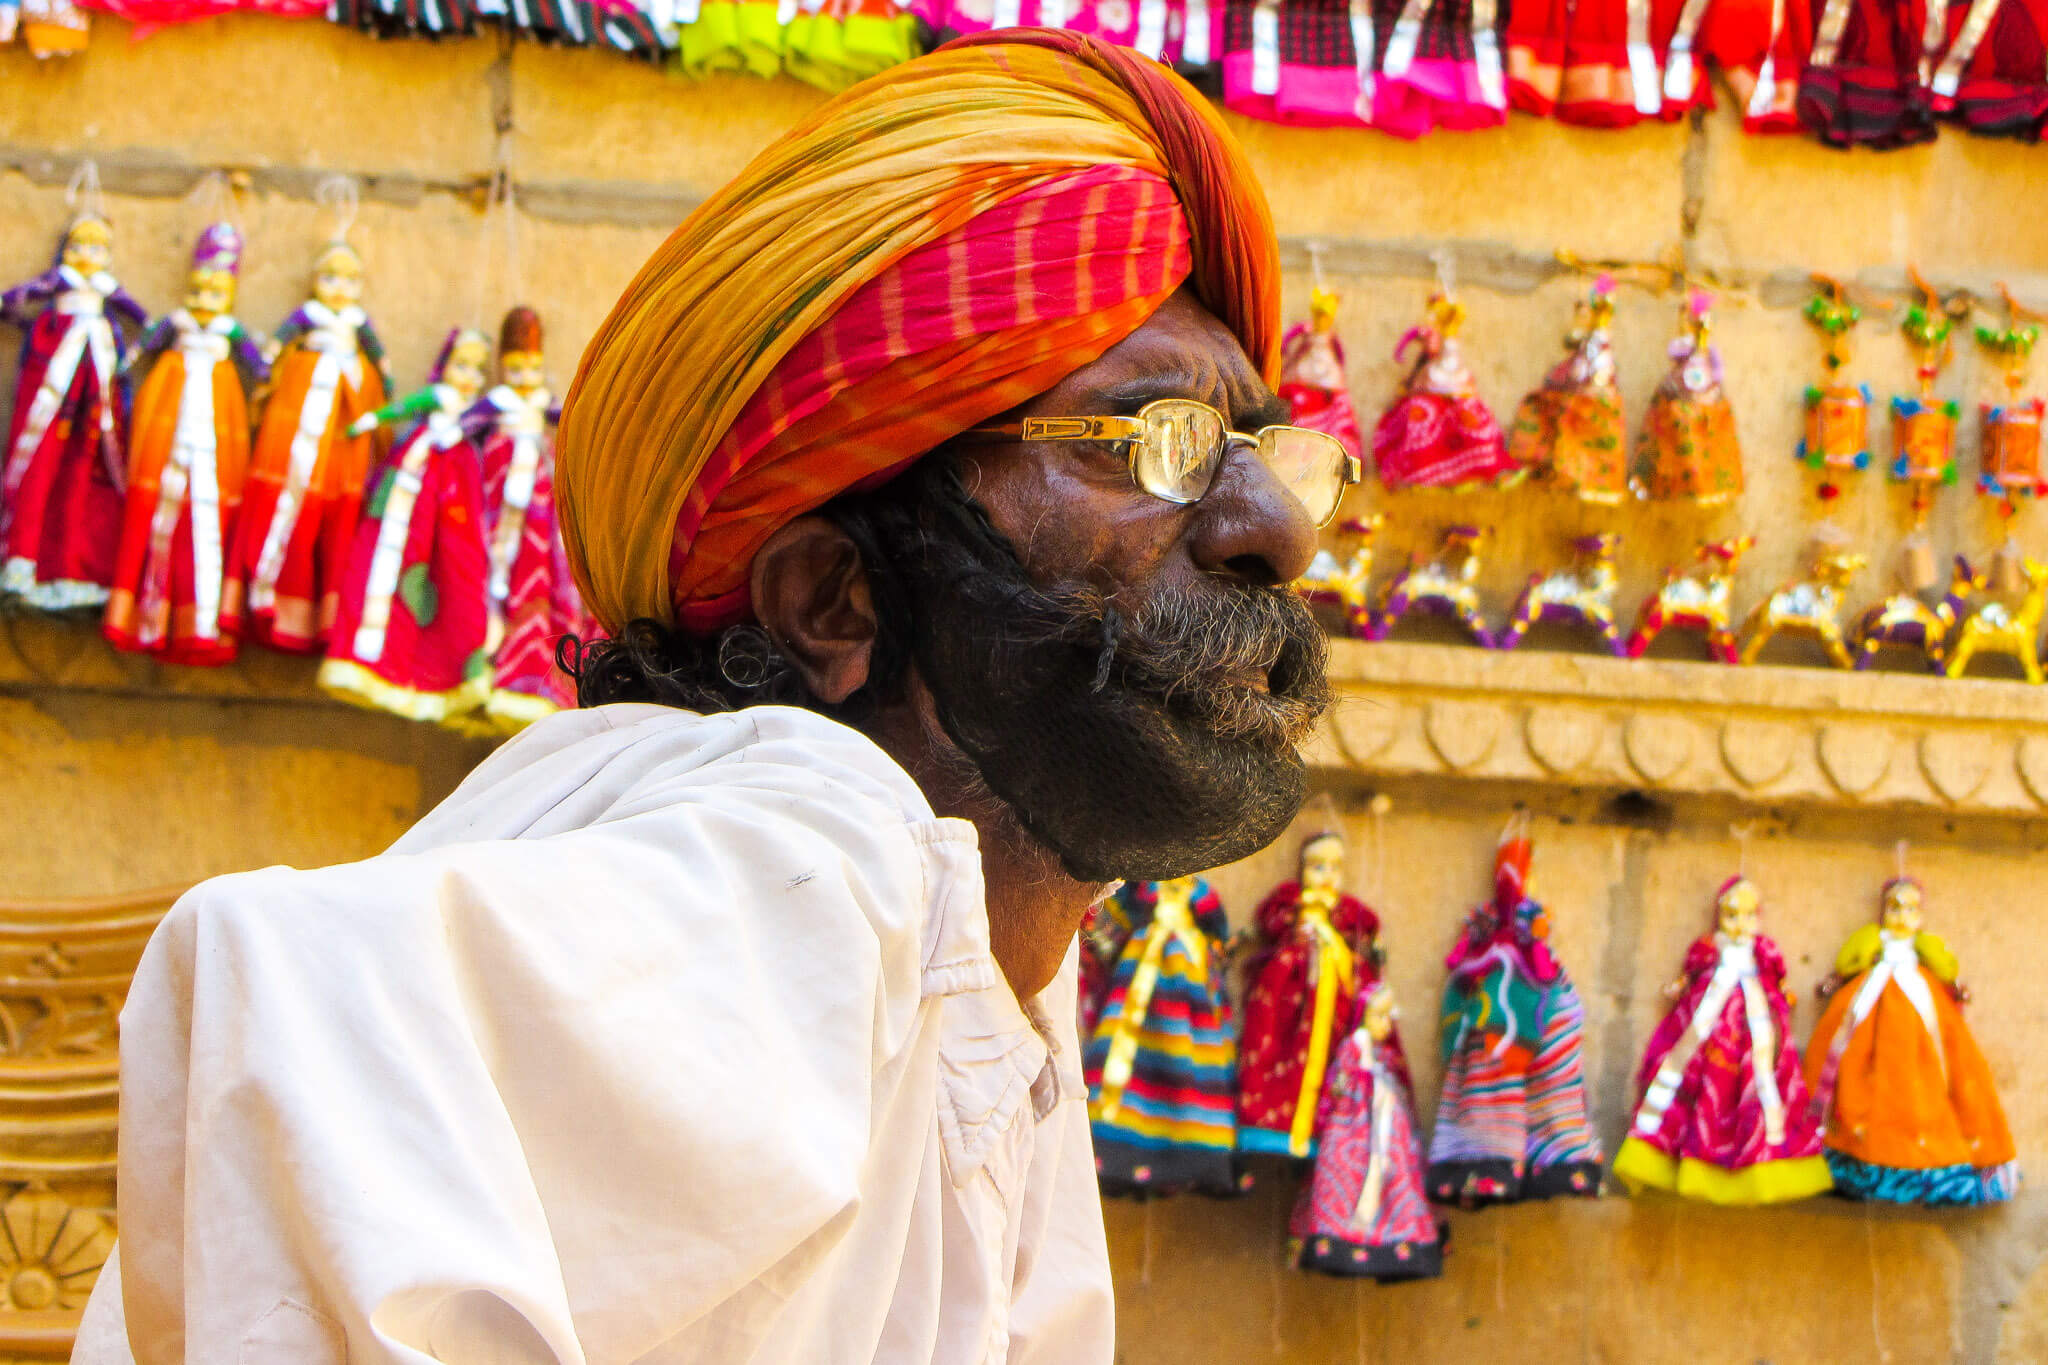 The vendors of Rajasthan